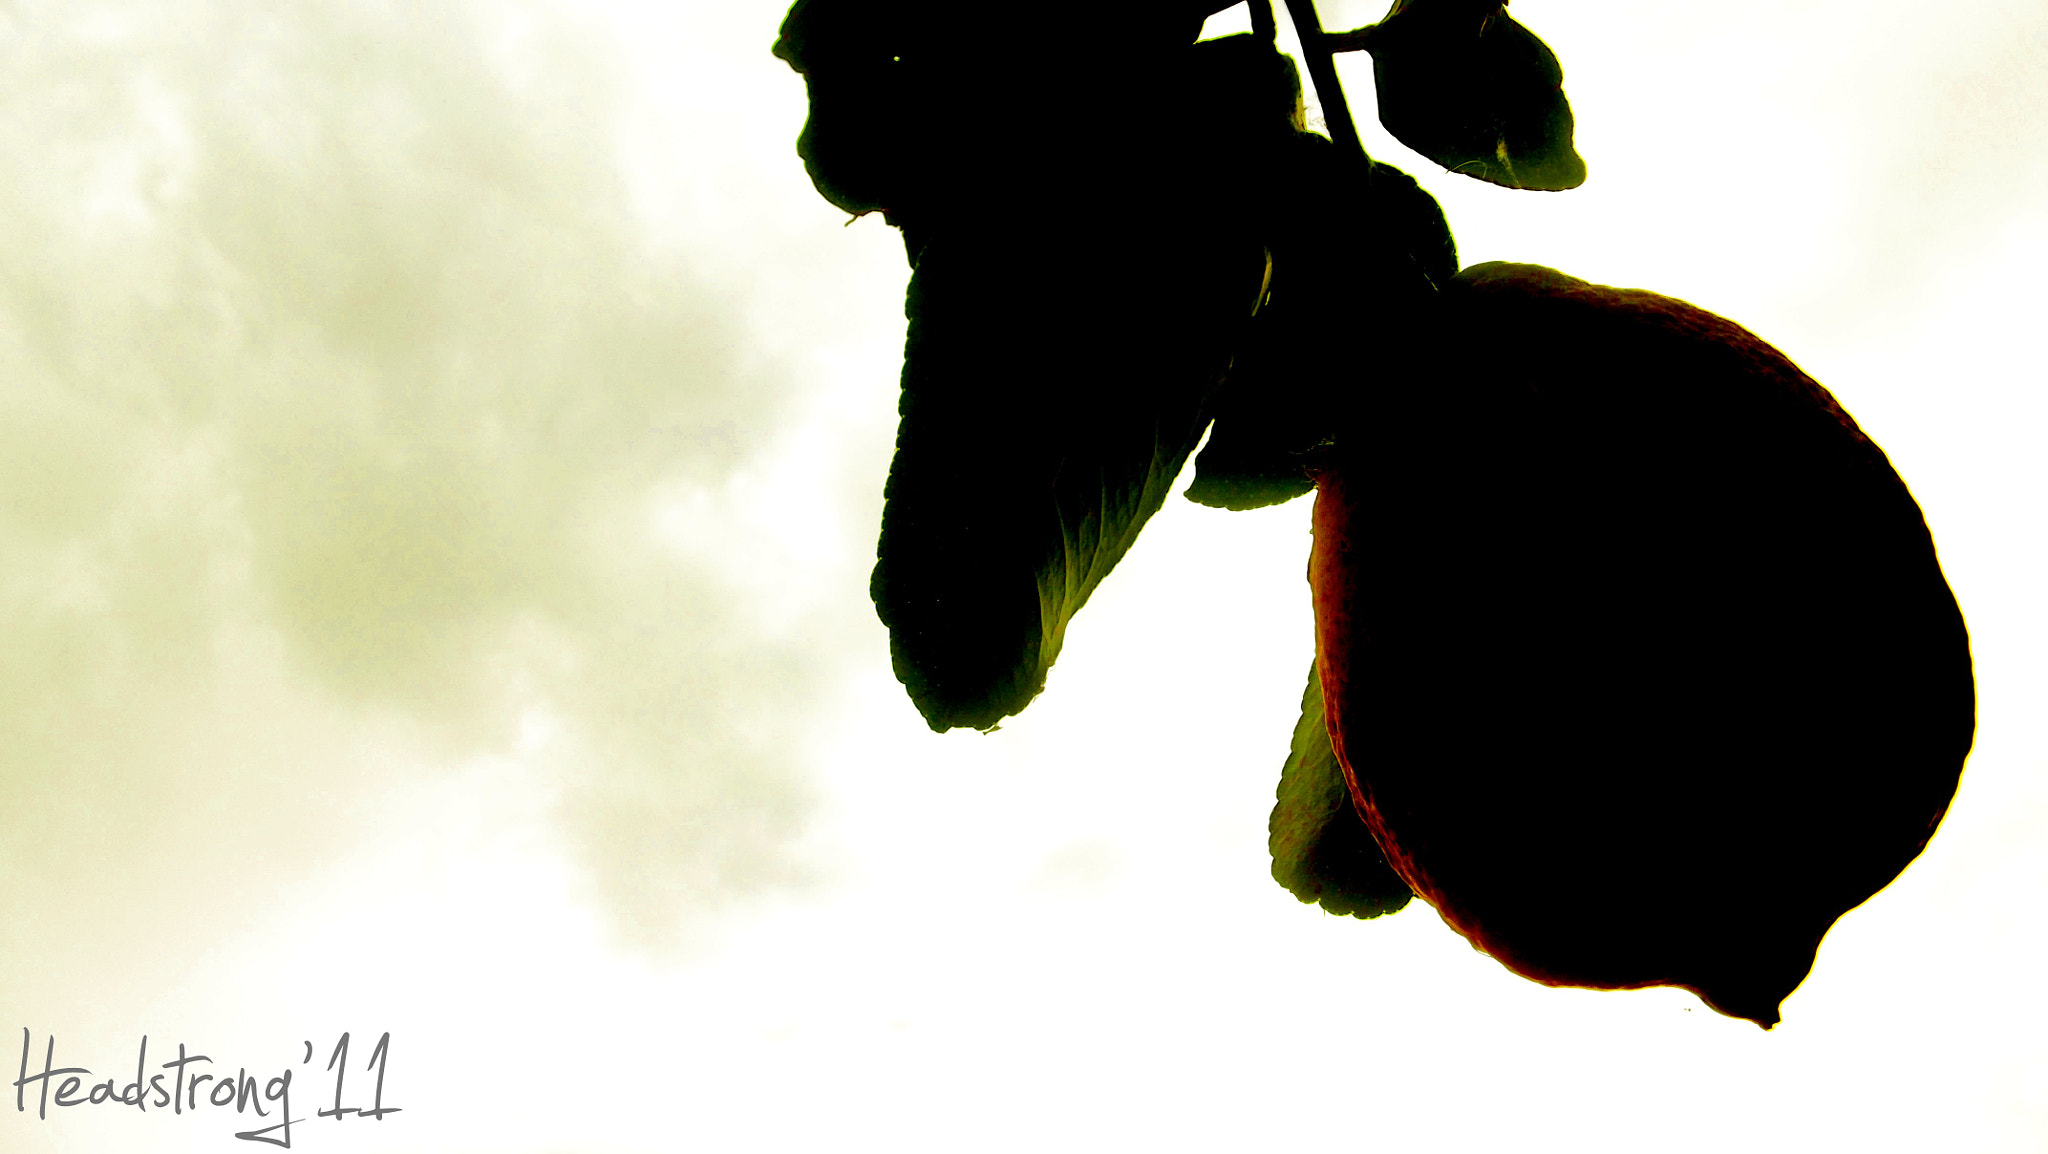 Photograph Under the Lemon Tree by Headstrong '11 on 500px